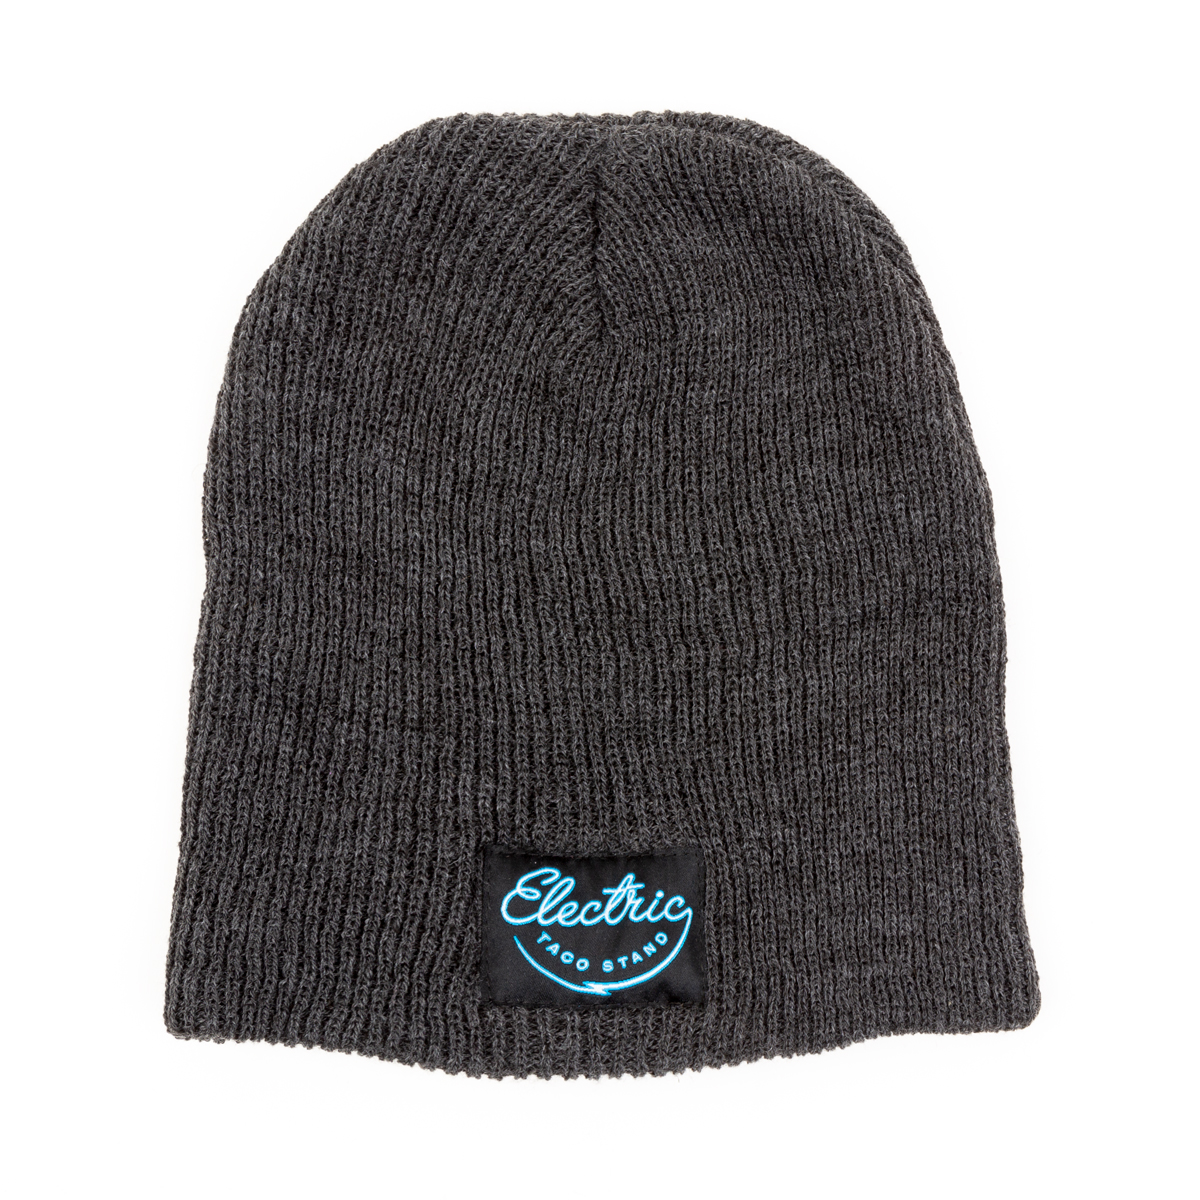 Electric Taco Stand Beanie